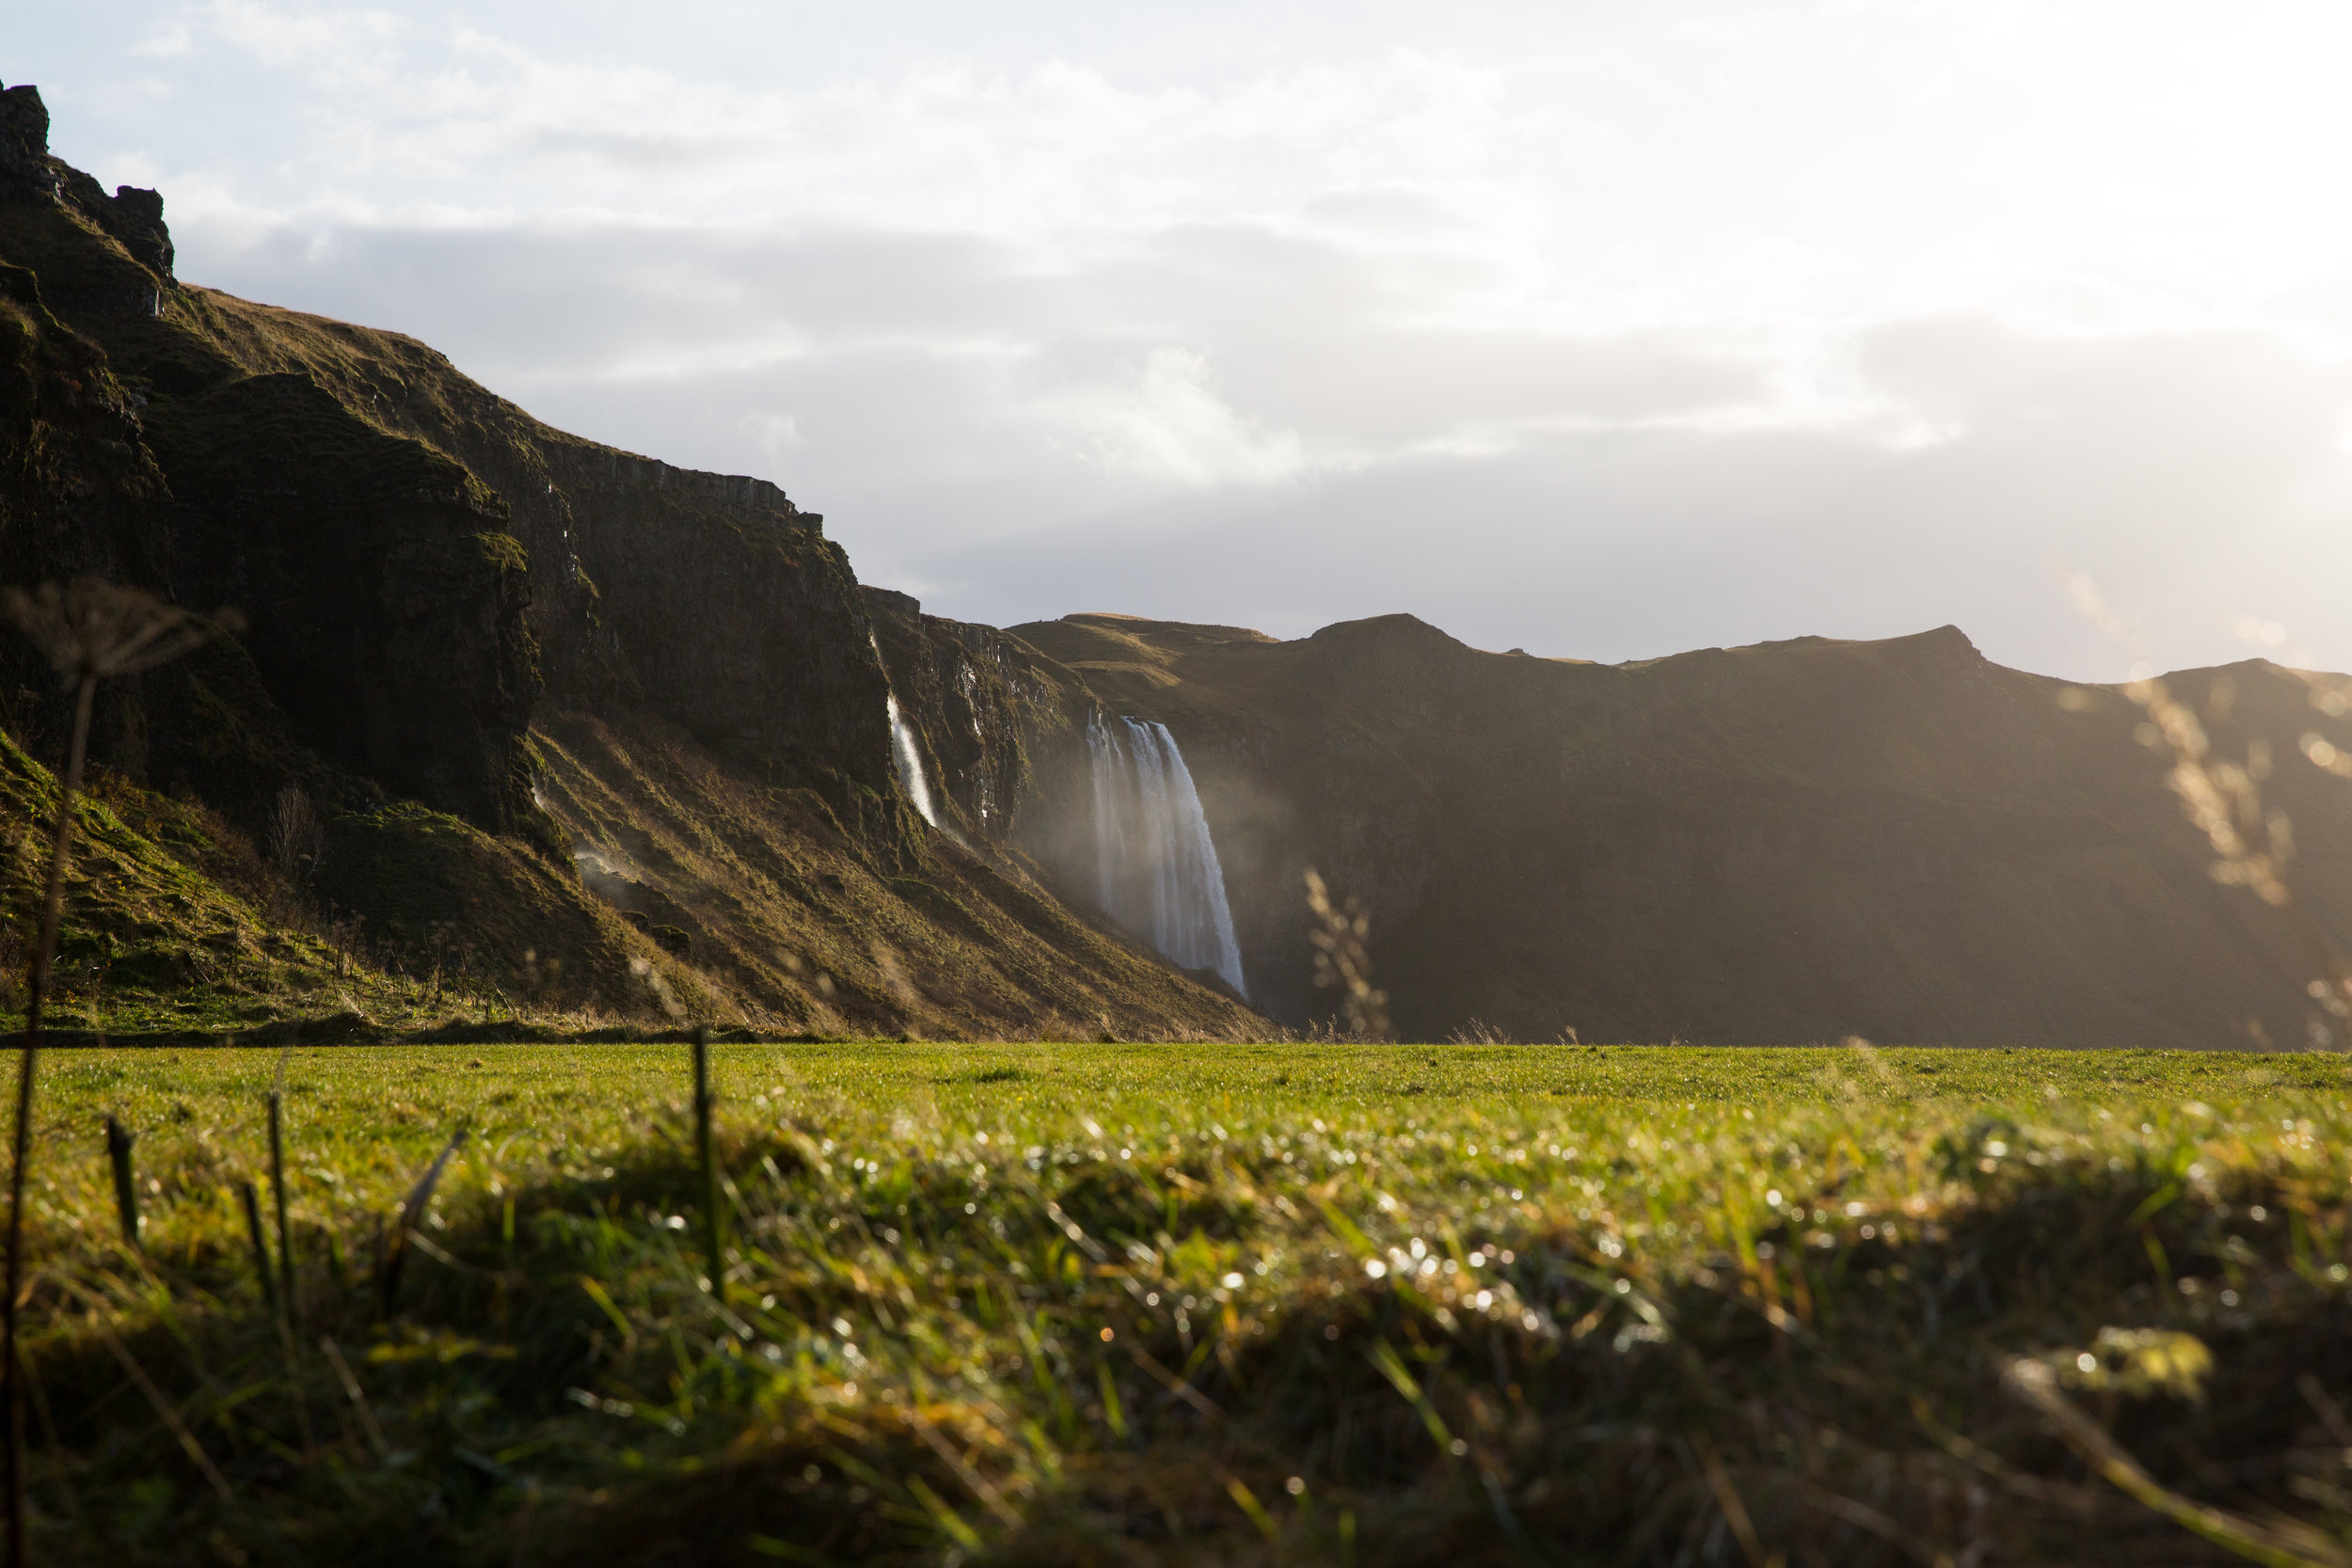 Easily a top pick from our adventure. Eyjafjalla from across the fields. A unique feeling to Iceland: the sense of new adventure with nearly every view.